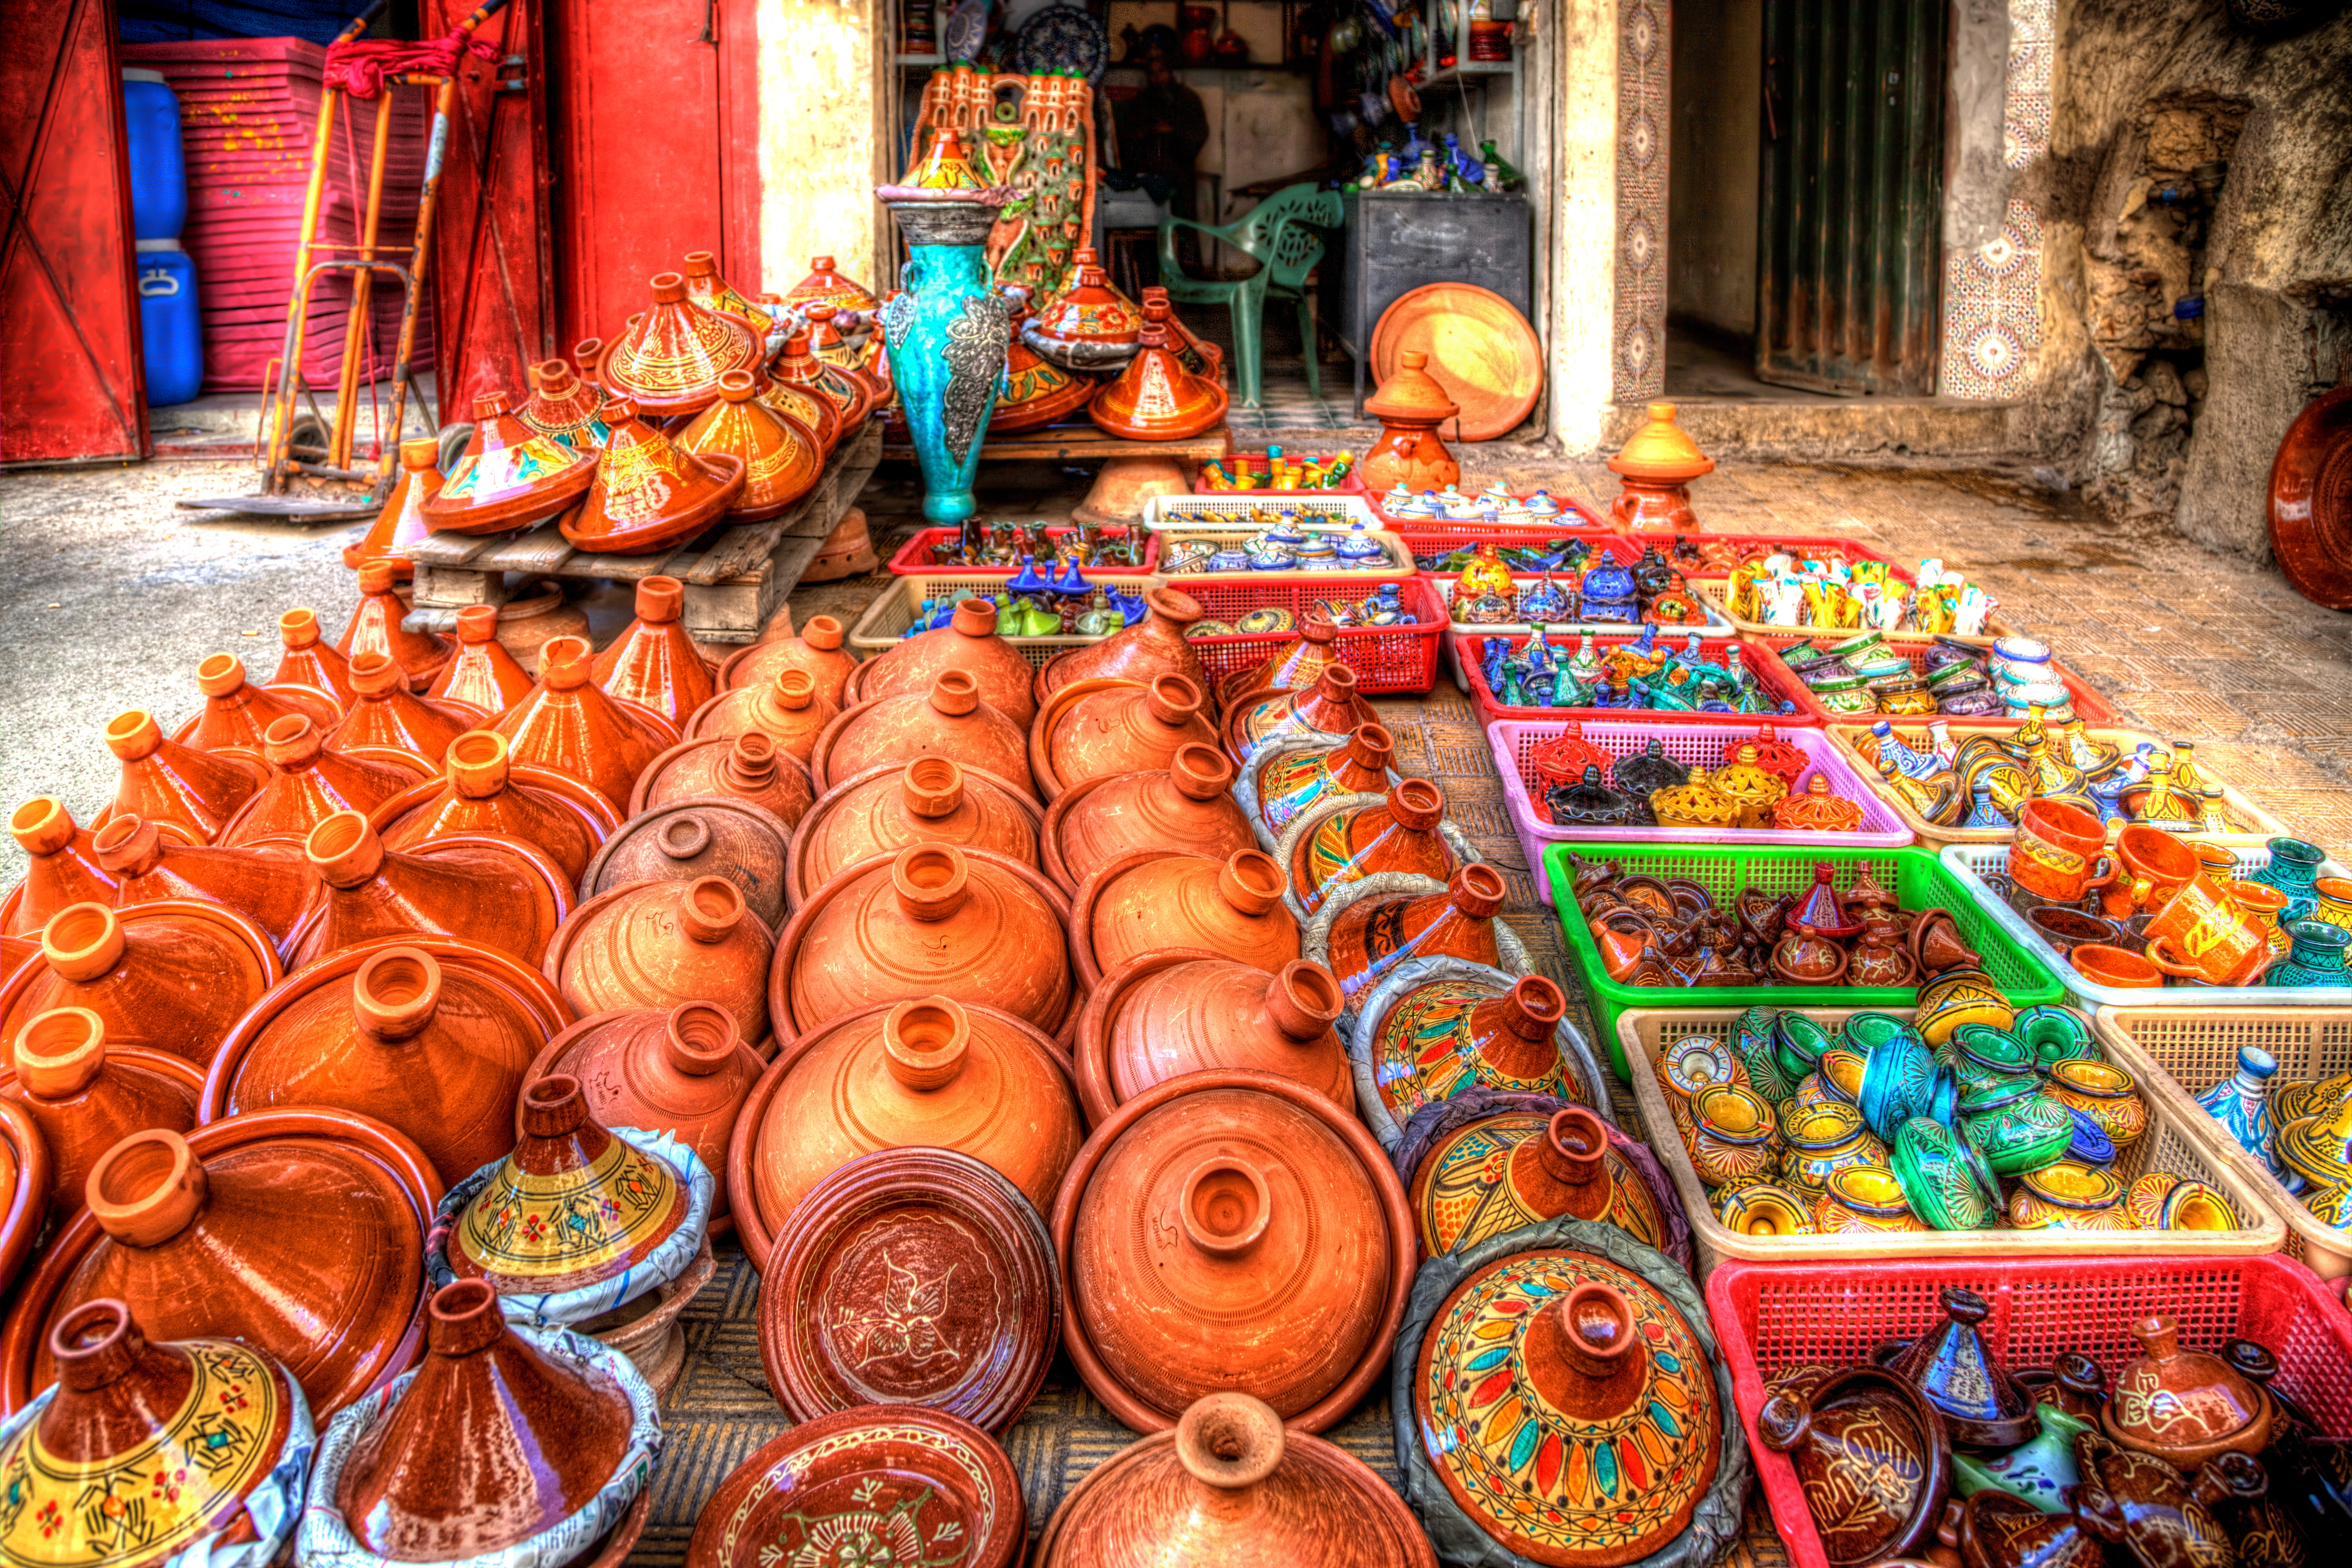 Safi, walk in the land of potters